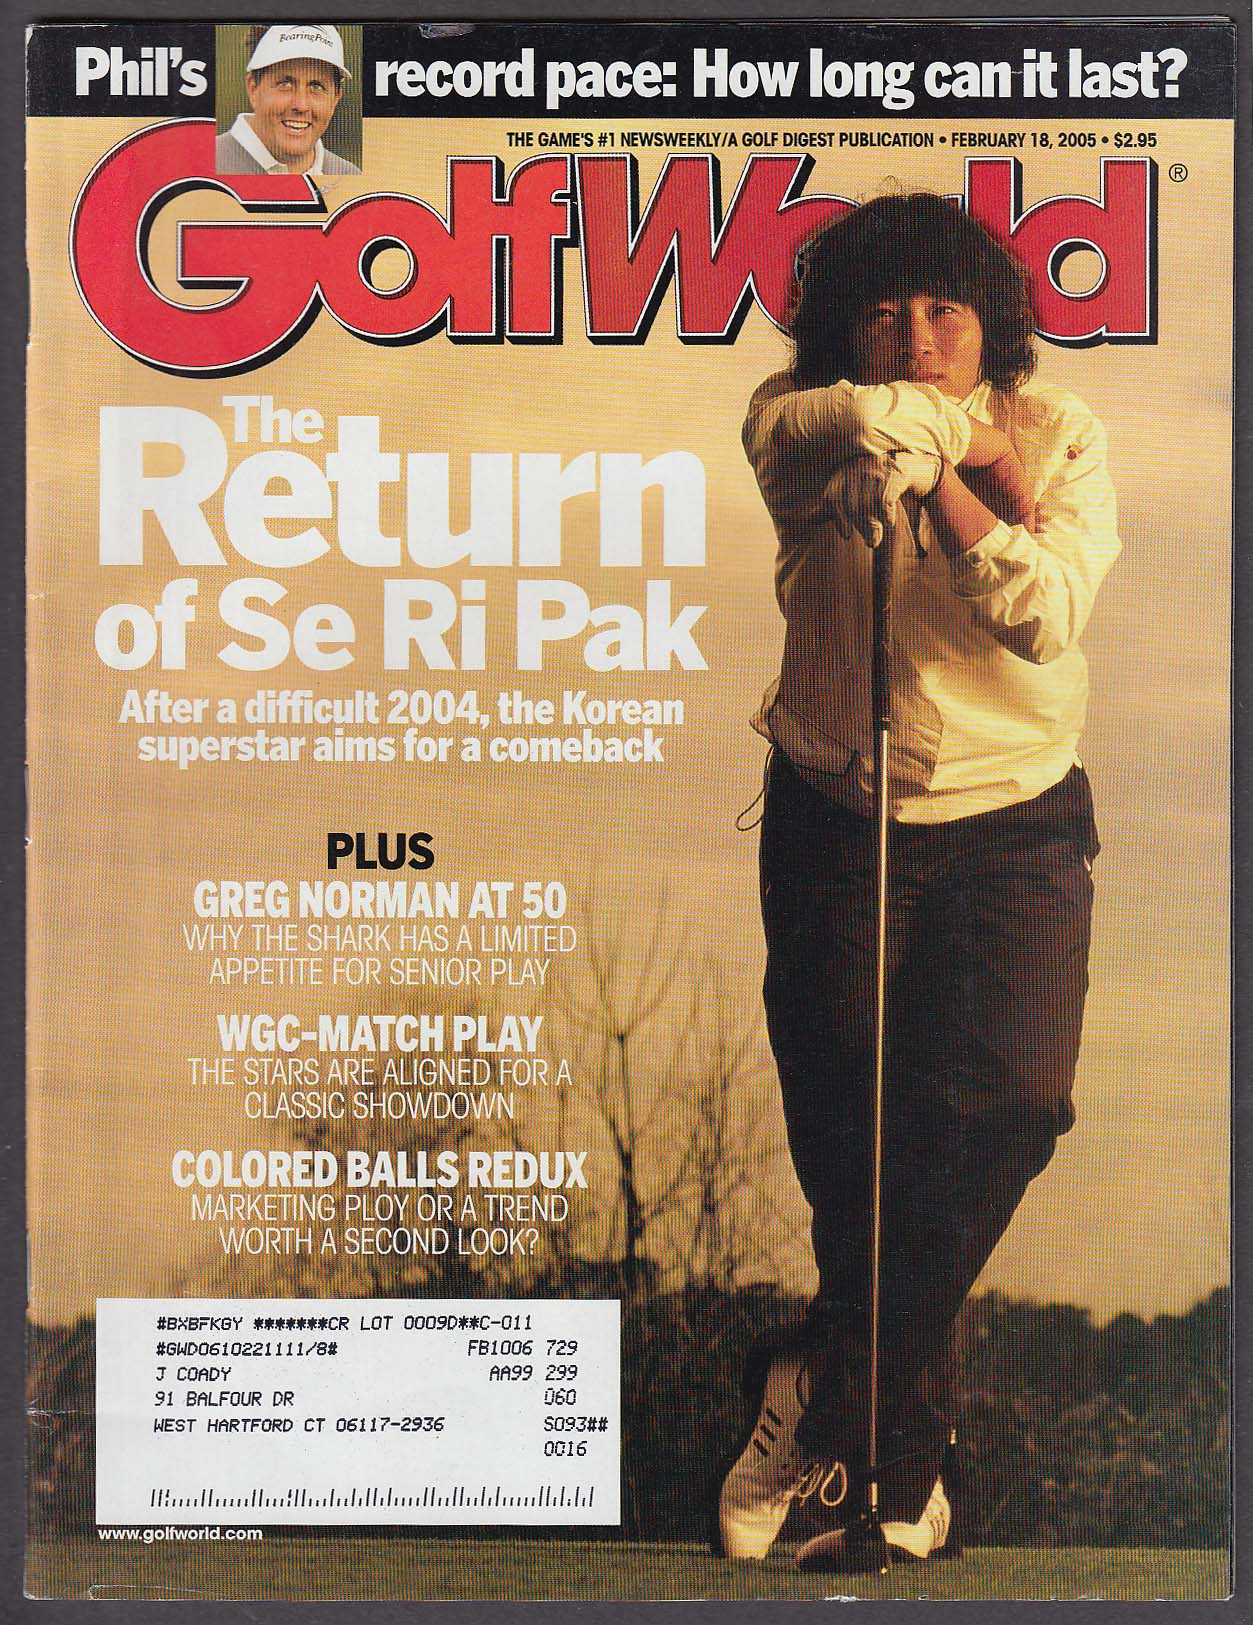 Image for GOLF WORLD Se Ri Pak Greg Norman Phil Mickelson 2/18 2005